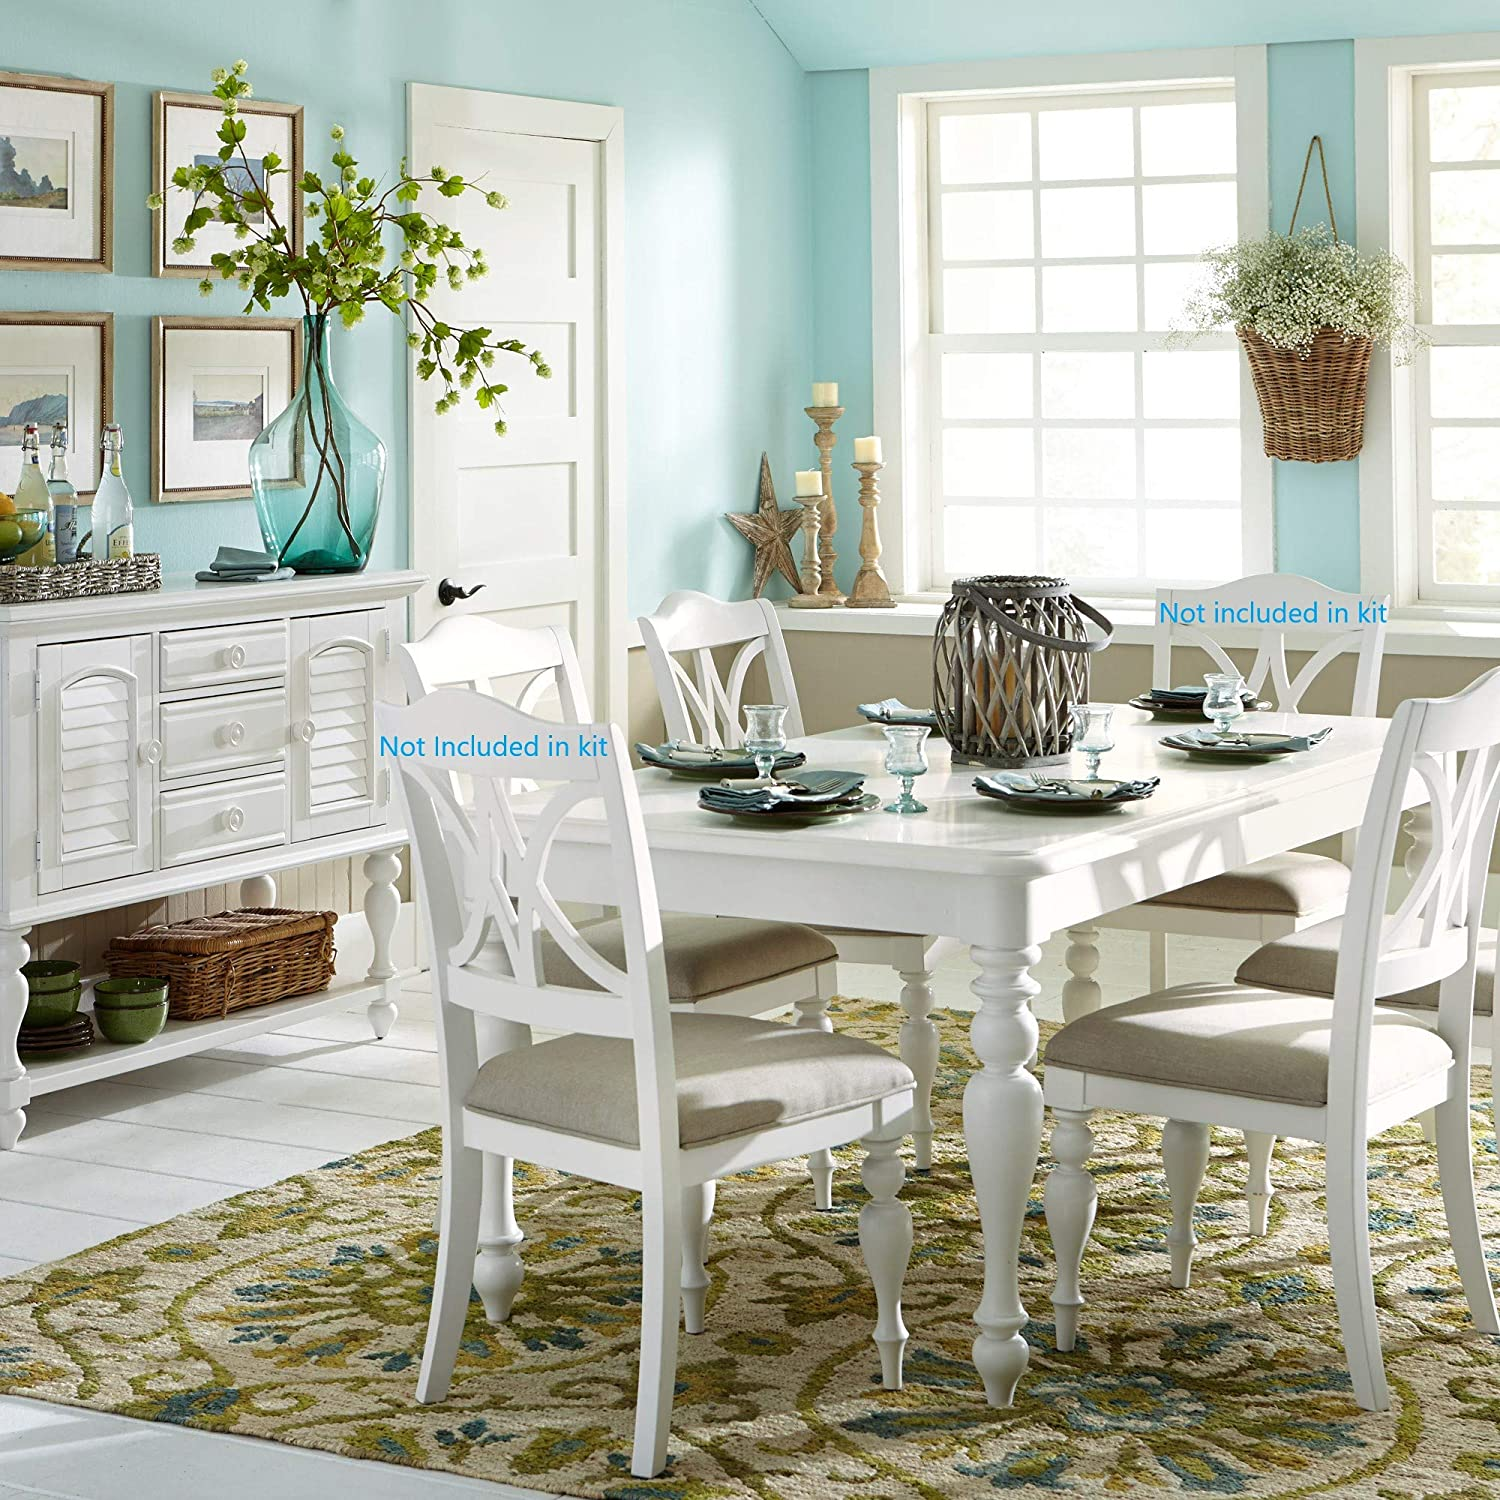 Liberty Furniture Industries Summer House 5 Piece Rectangular Table Set, W40 x D78 x H30, White